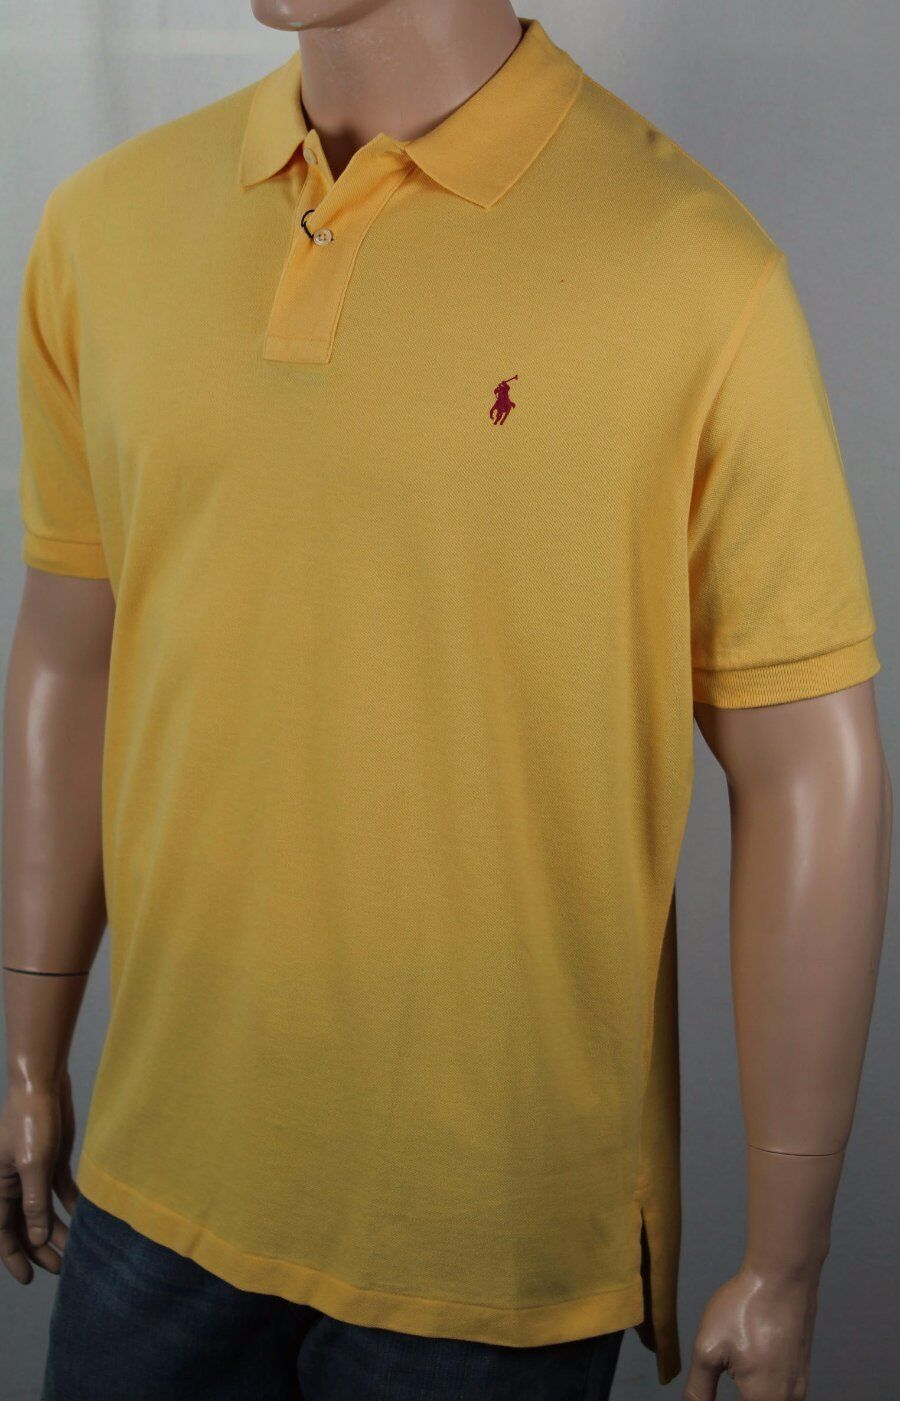 Polo Ralph Lauren Yellow Classic Fit Mesh Shirt Red Pony NWT